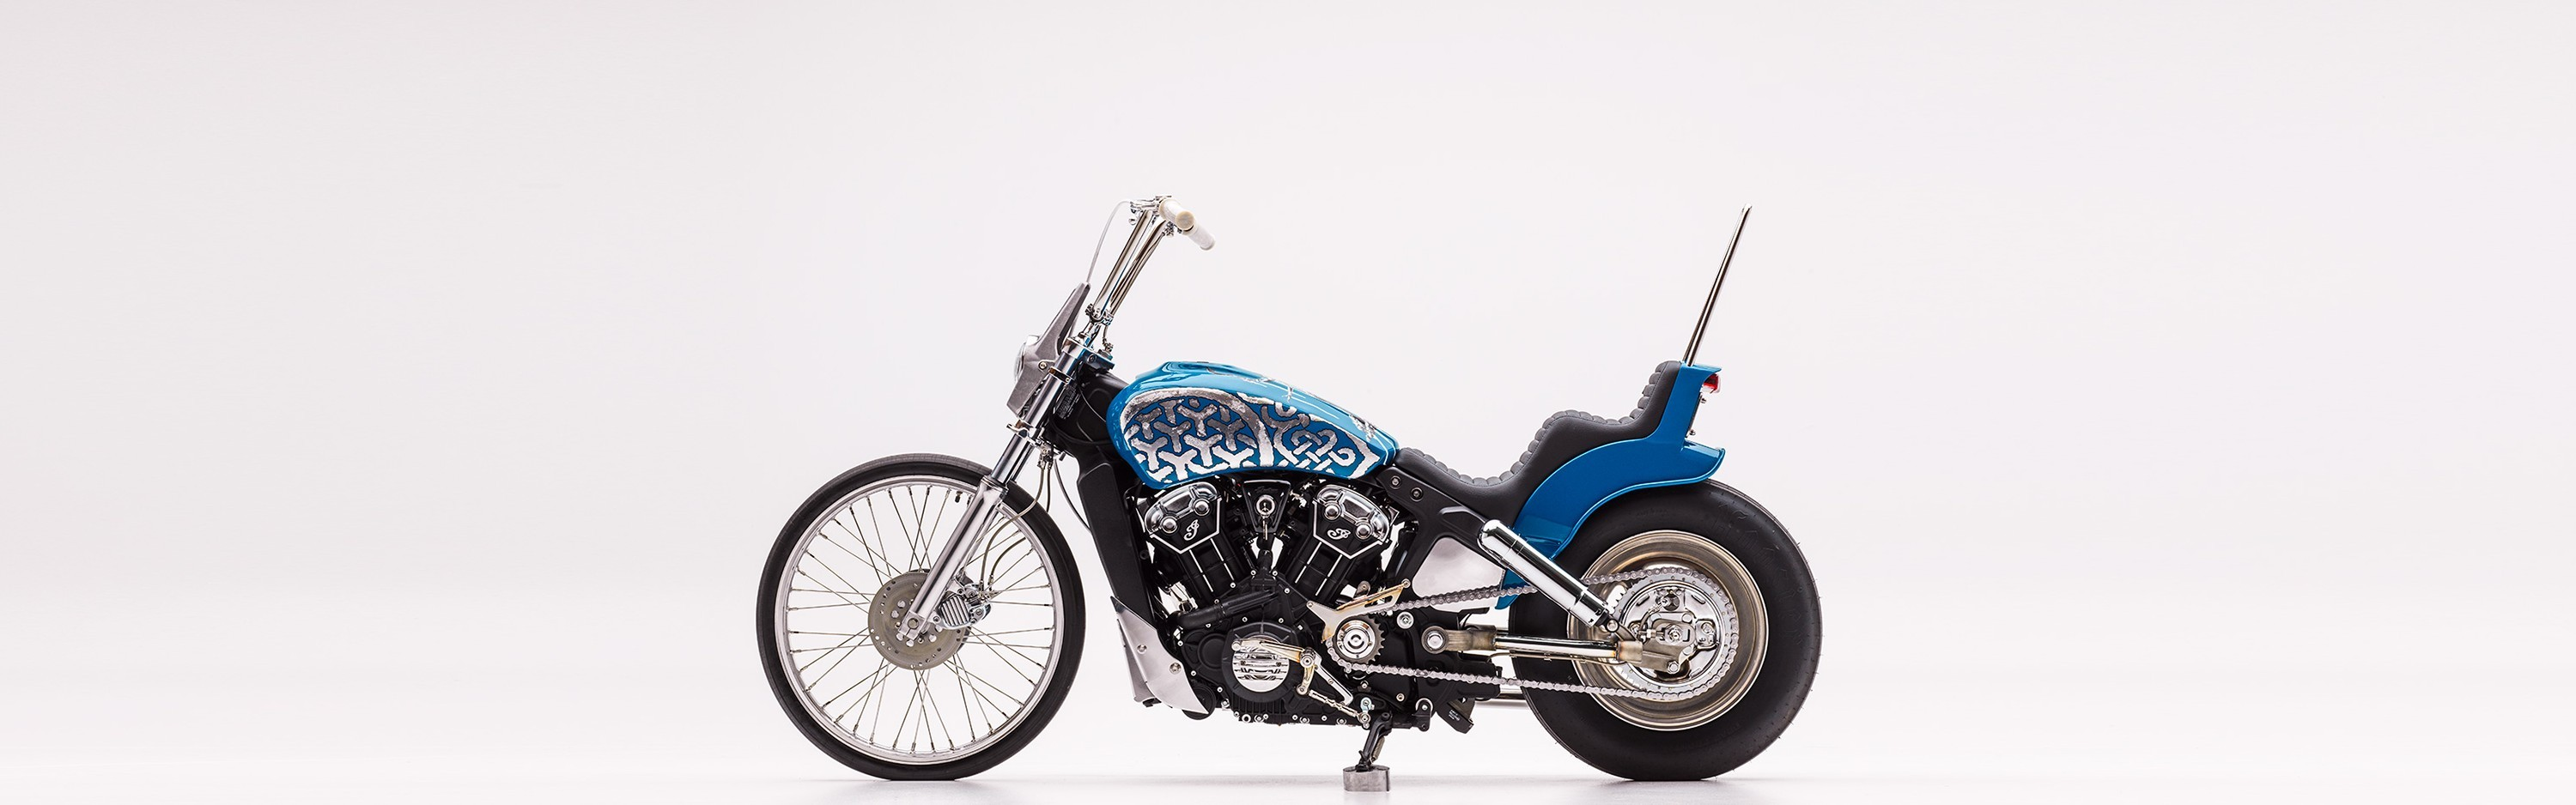 indian-motorcycle-the-wrench-scout-bobber-build-off-12